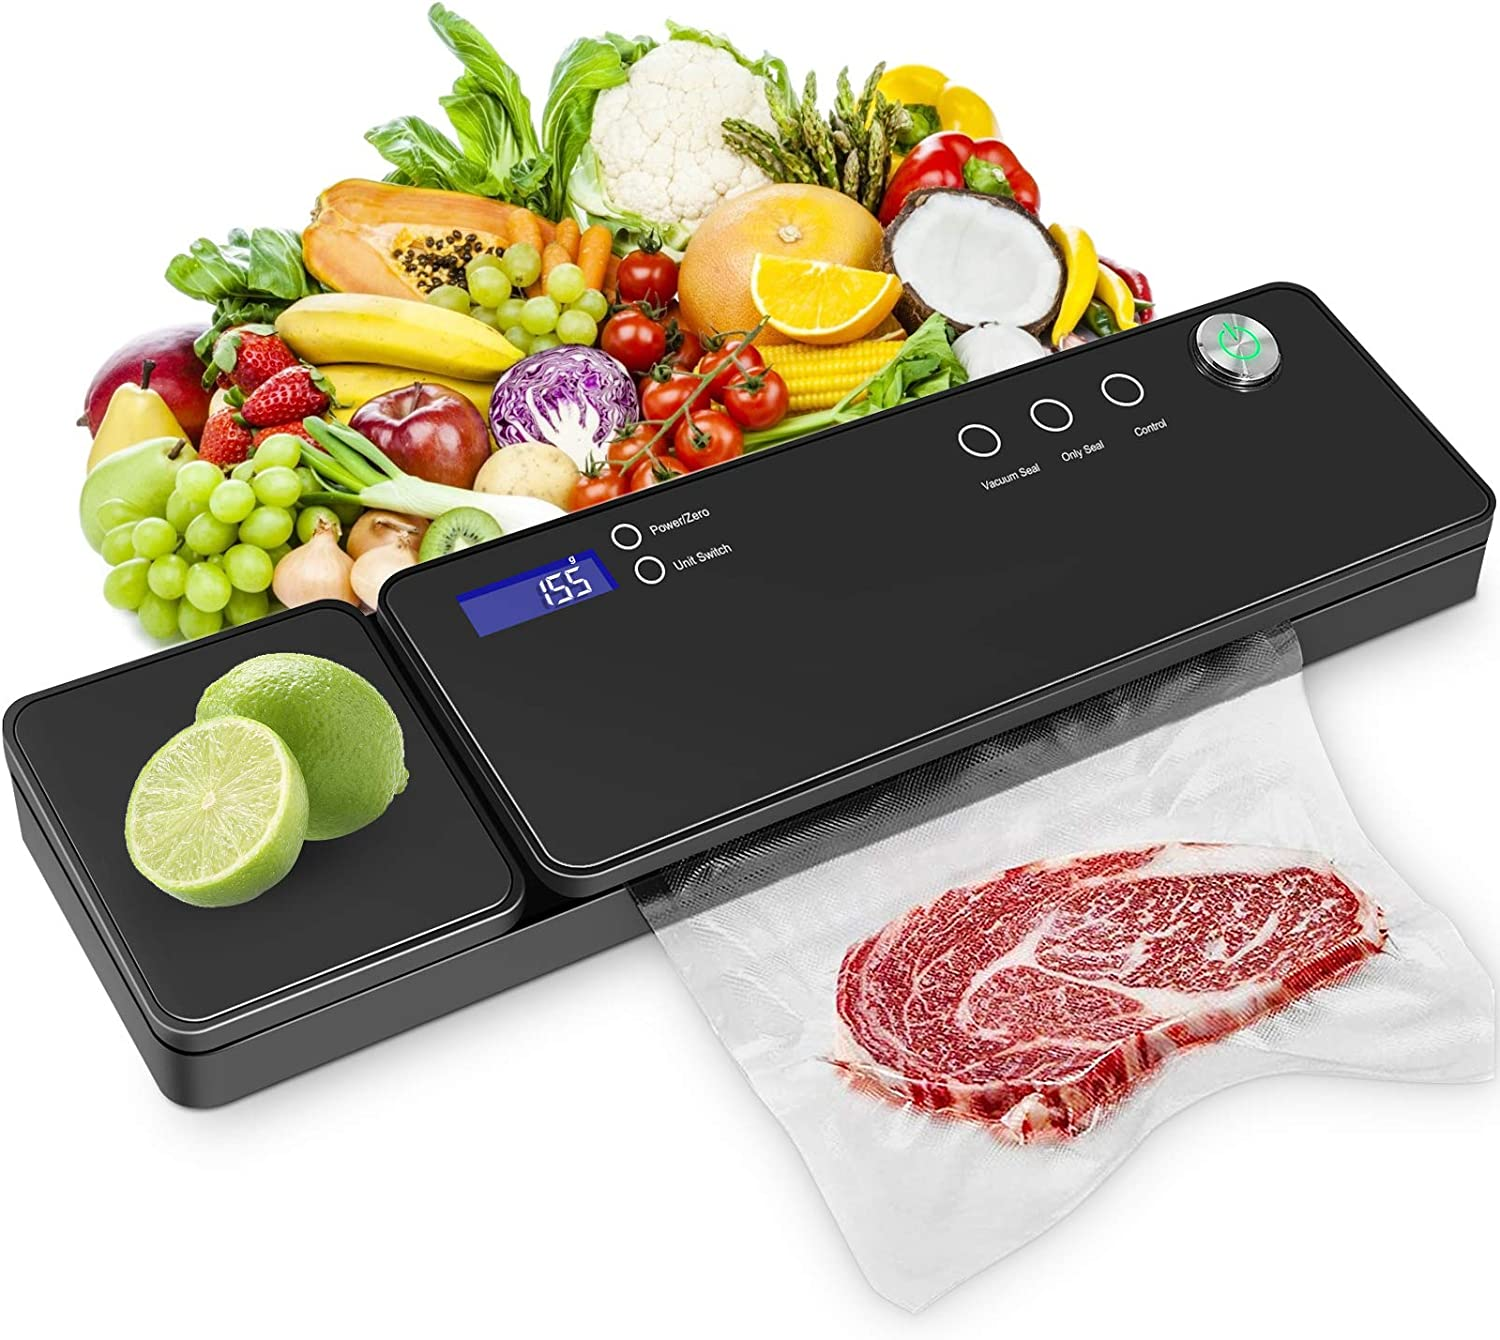 Vacuum Sealer Machine, VOLADOR Automatic Vacuum Sealer with Scale for Food Saver, Sous Vide Cooking, Dry/Moist Foods, Cutter, 10 Sealer Bags